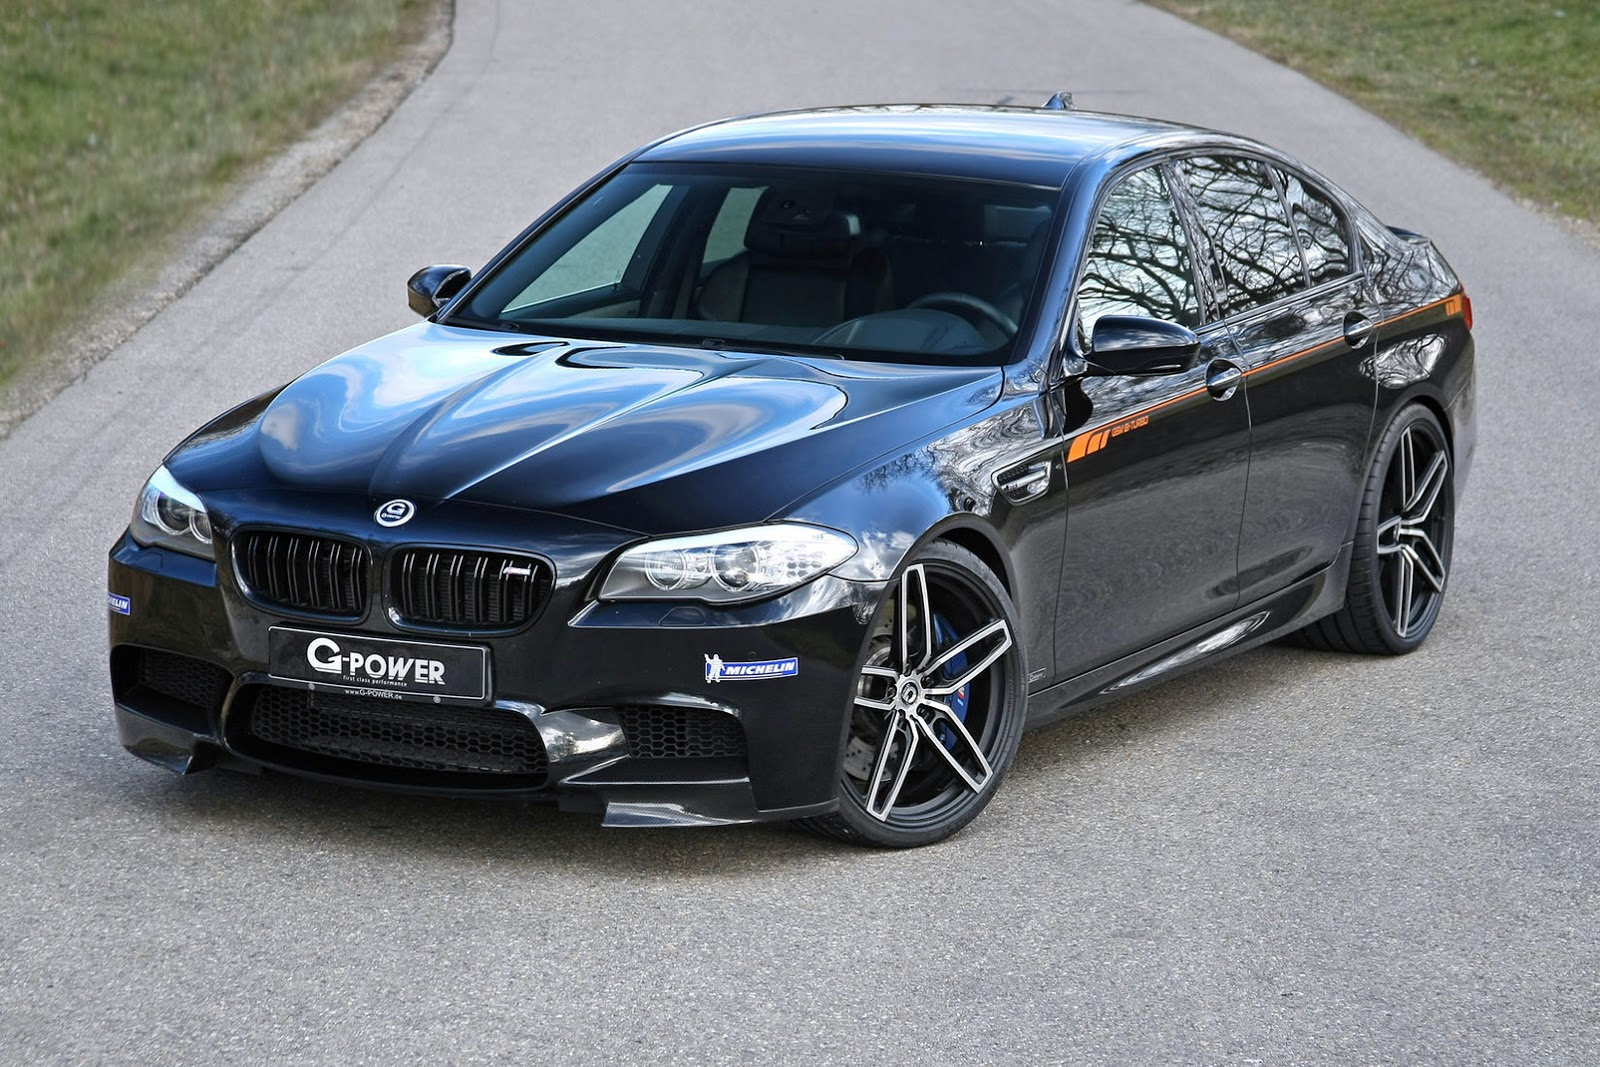 BMW M5 G-POWER ѕвер од 800 КС